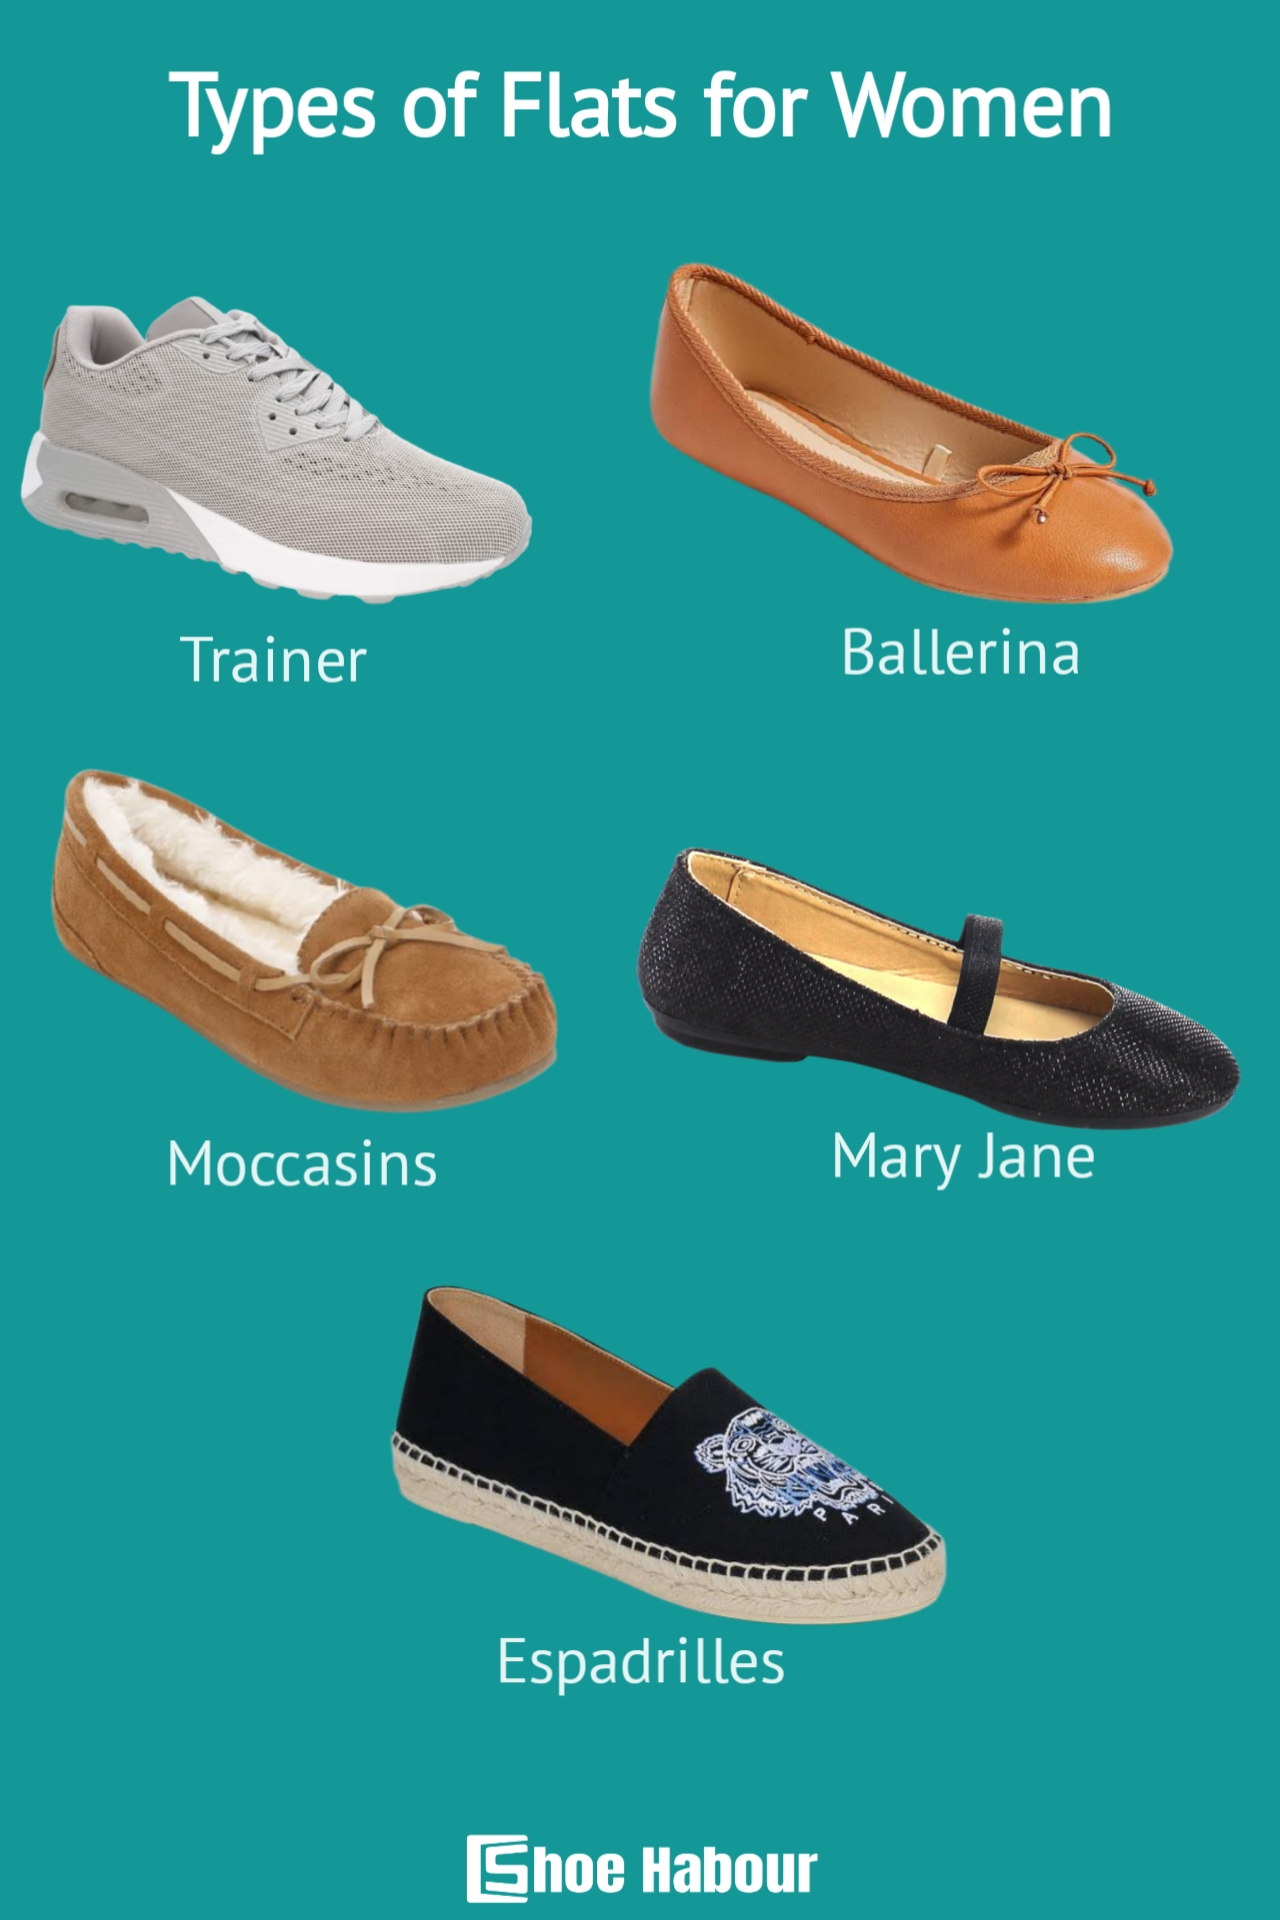 Types of women's flat shoes